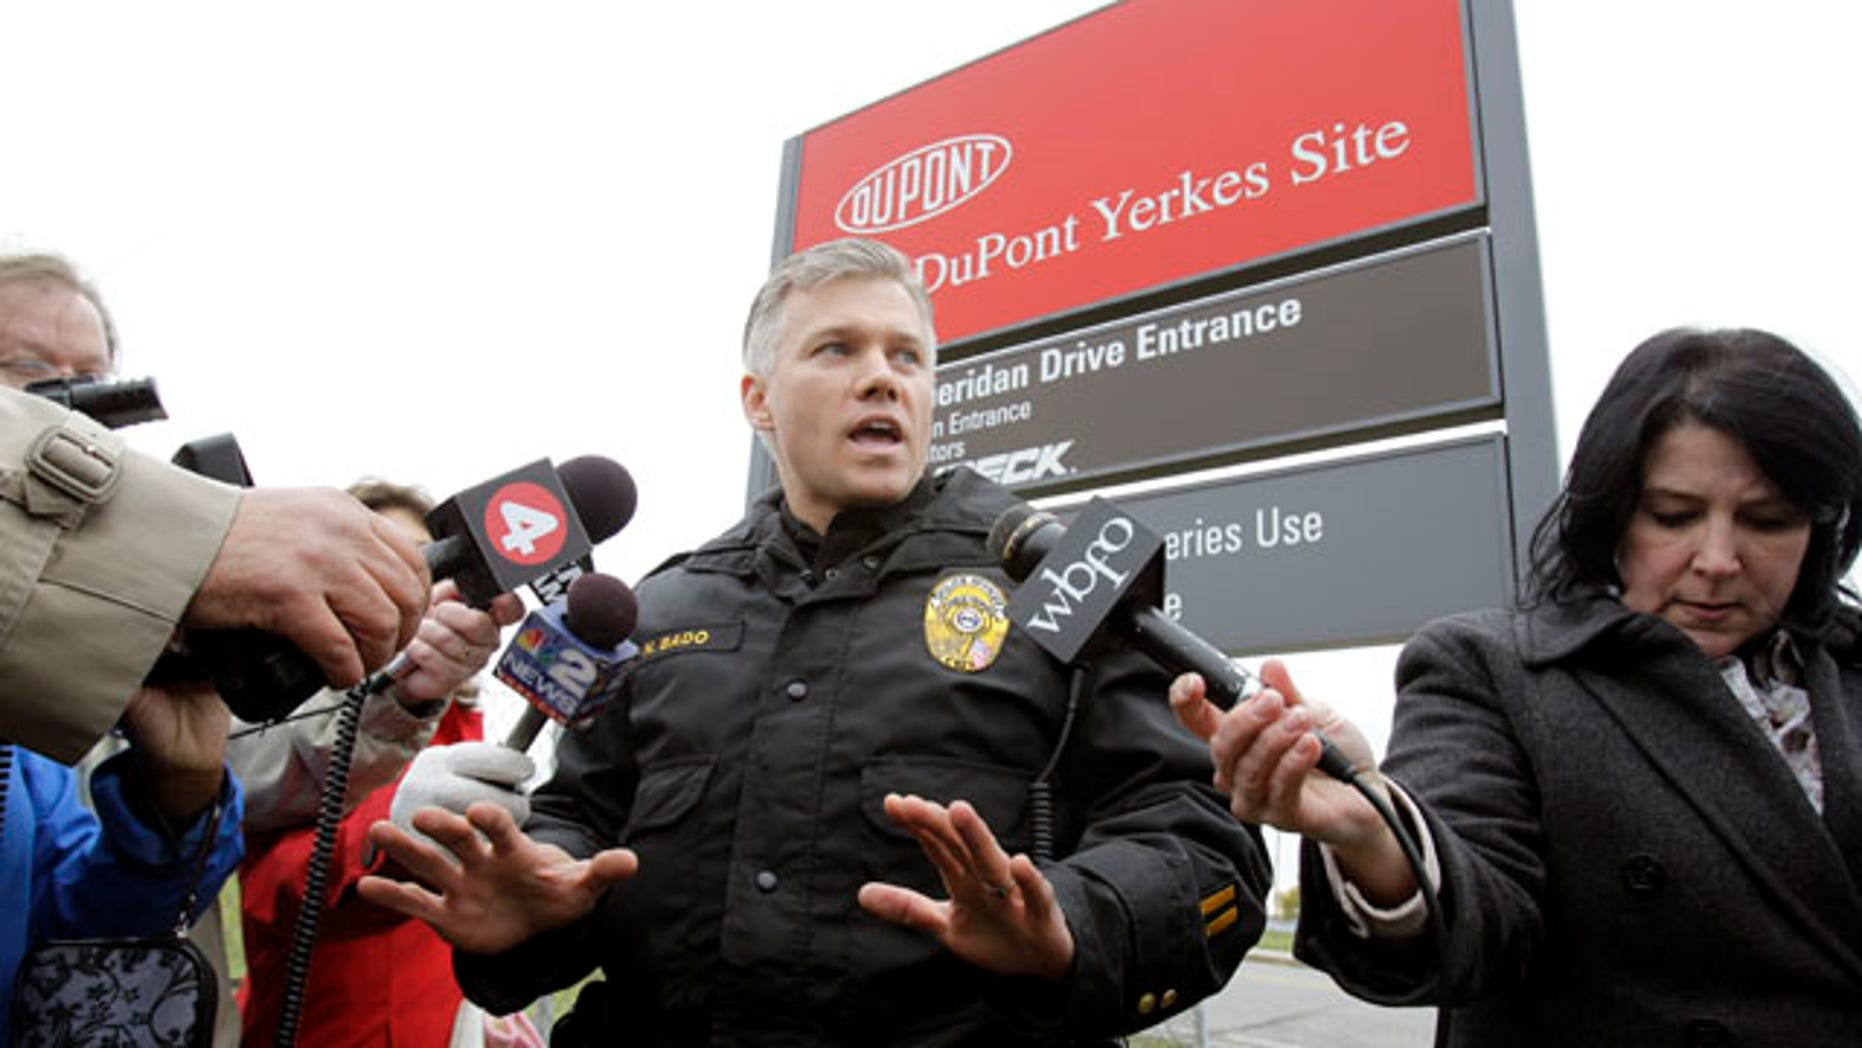 Nov. 9: Tonawanda police officer Nicholas Bado speaks during a news conference at the site of a small tank explosion at a DuPont plant in Tonawanda, N.Y. Police say the explosion killed one worker, injured another and forced part of the building to be evacuated.